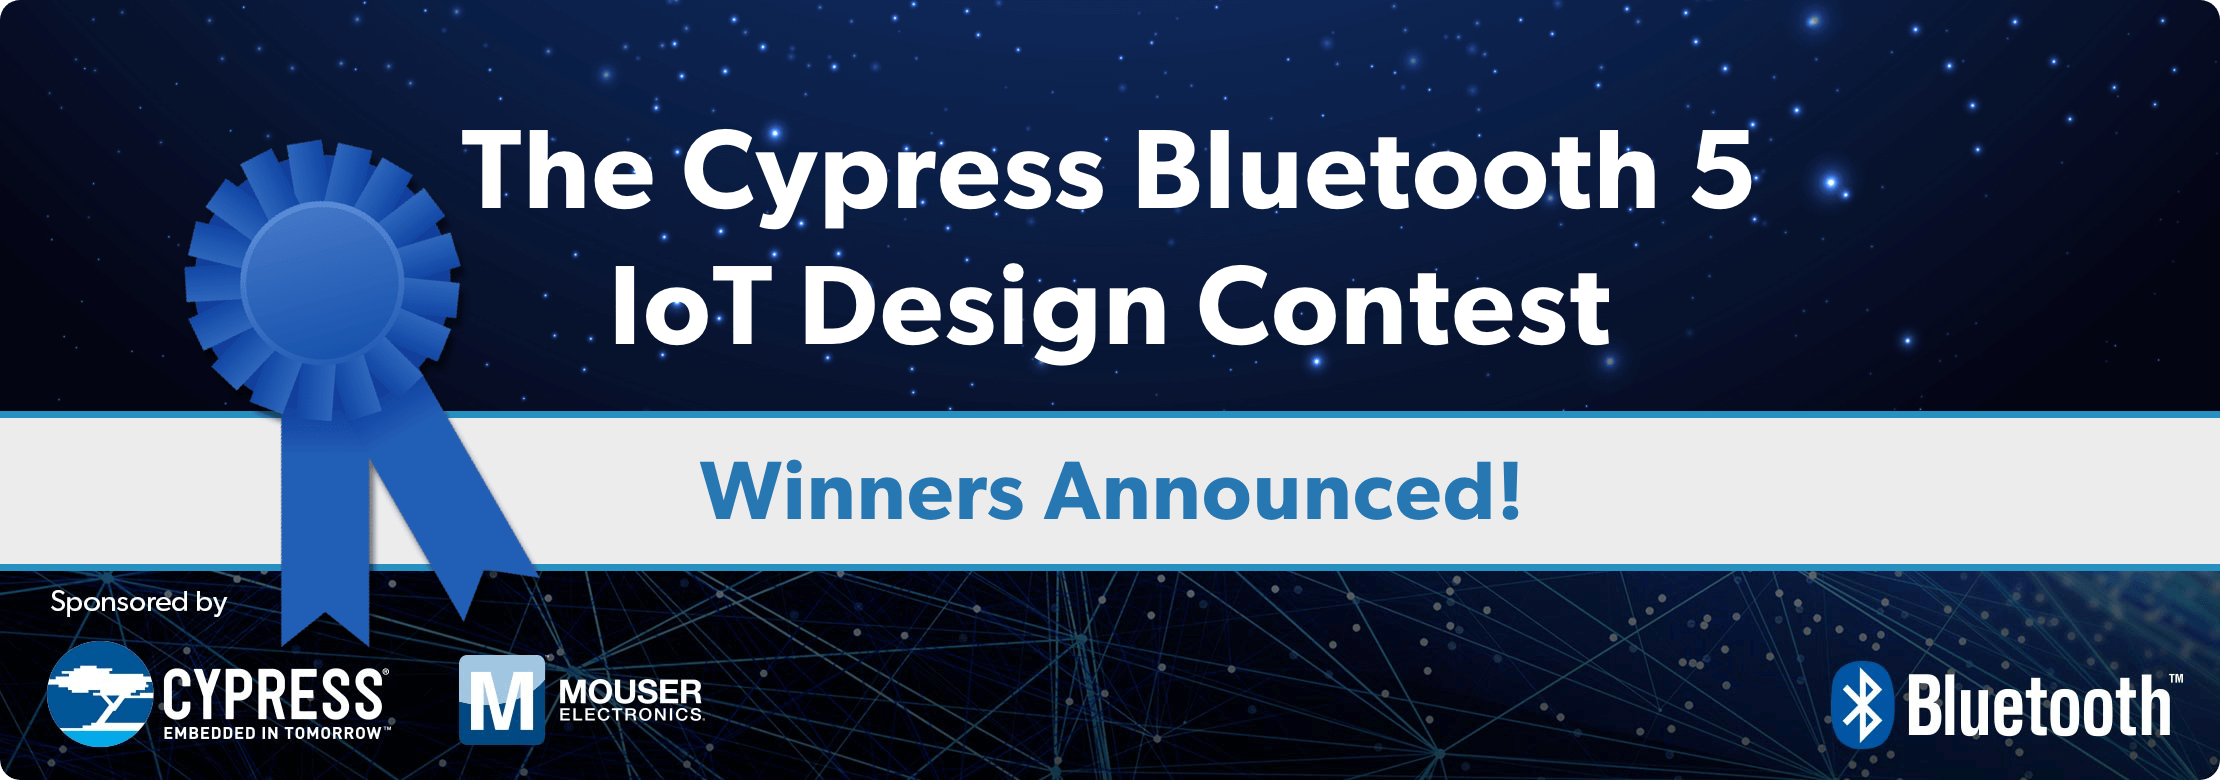 Cypress Bluetooth 5 IoT Contest